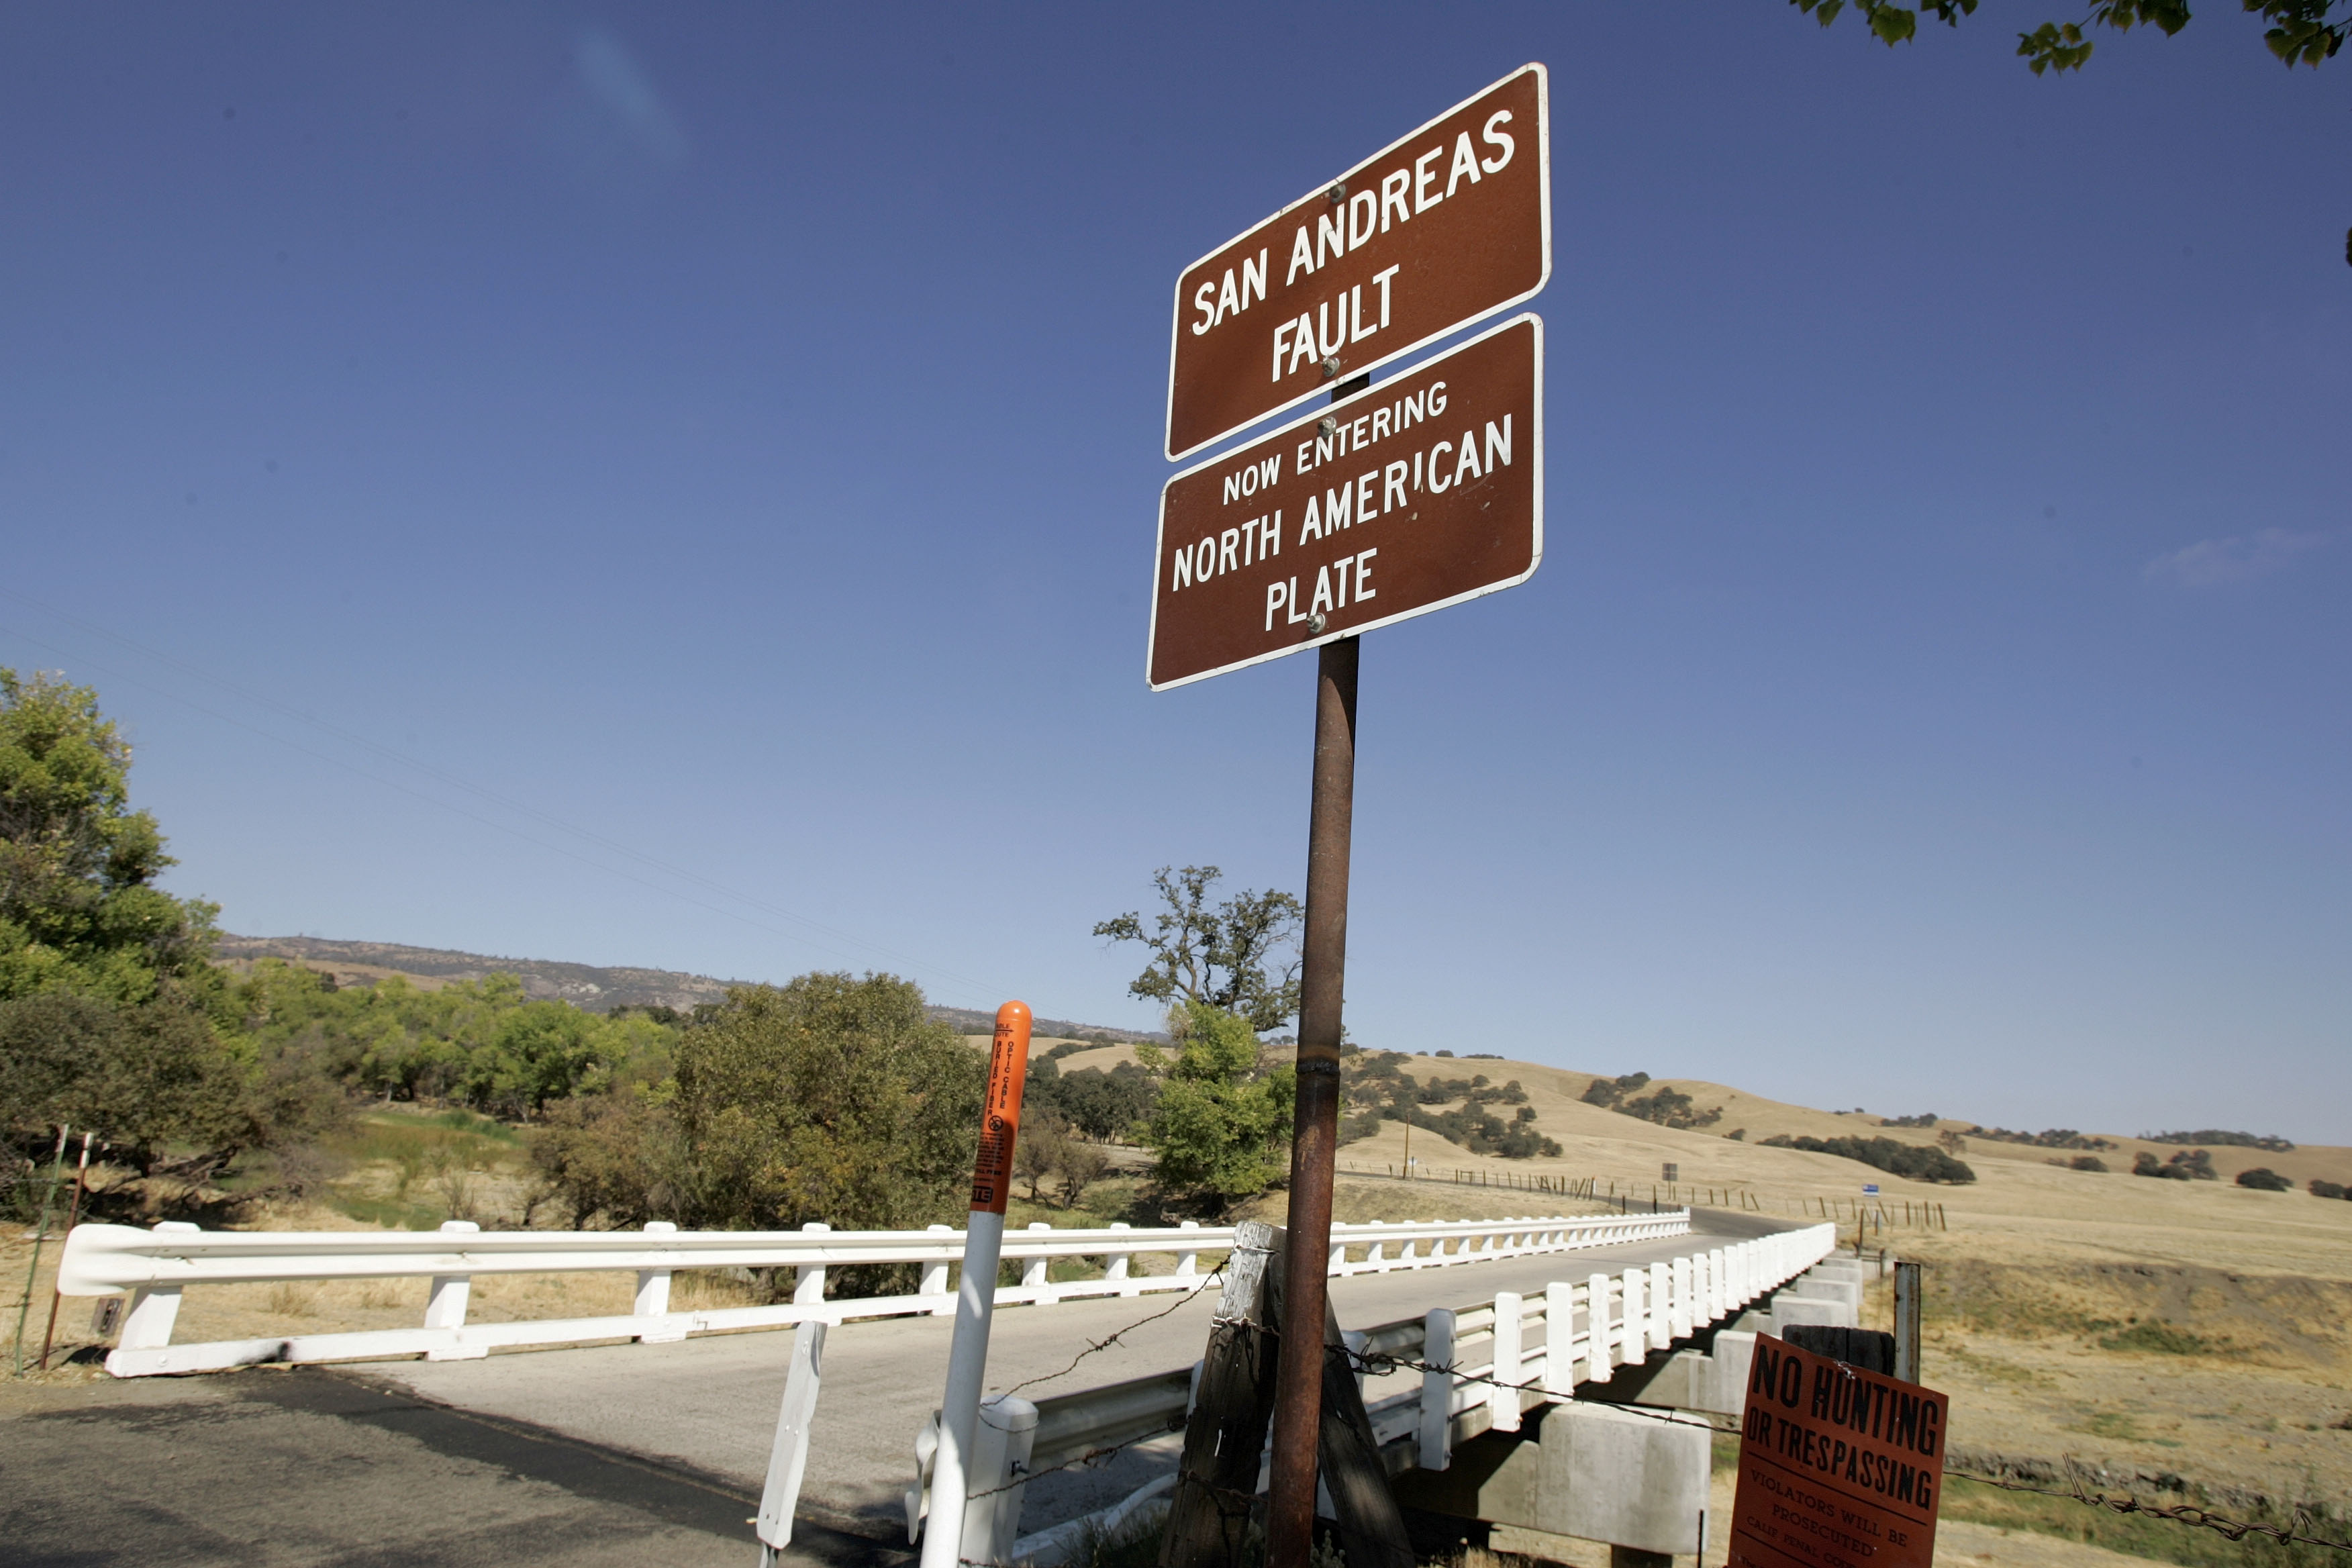 "PARKFIELD, CA - SEPTEMBER 30: The Parkfield Coalinga bridge crosses over the San Andreas fault on the Parkfield Coalinga Road on September 30, 2004 Parkfield, California. The tiny central California town with a population of 19 which claims to be known as ""The earthquake capital of the world"" was hit with a 6.0 earthquake on Tuesday September 28, 2004. (Photo by David Paul Morris/Getty Images)"